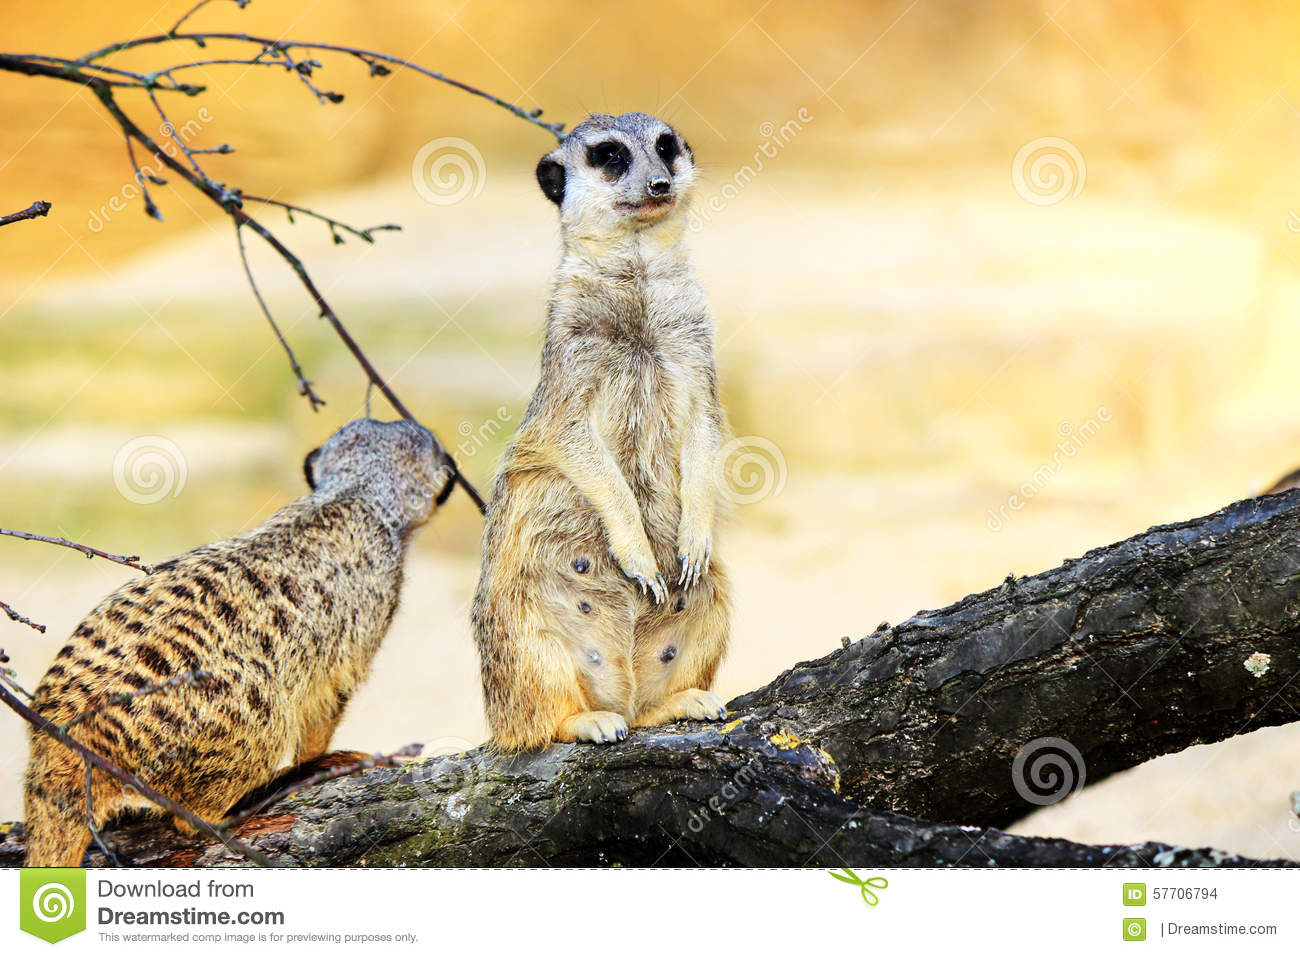 Two Meerkats on a Branch